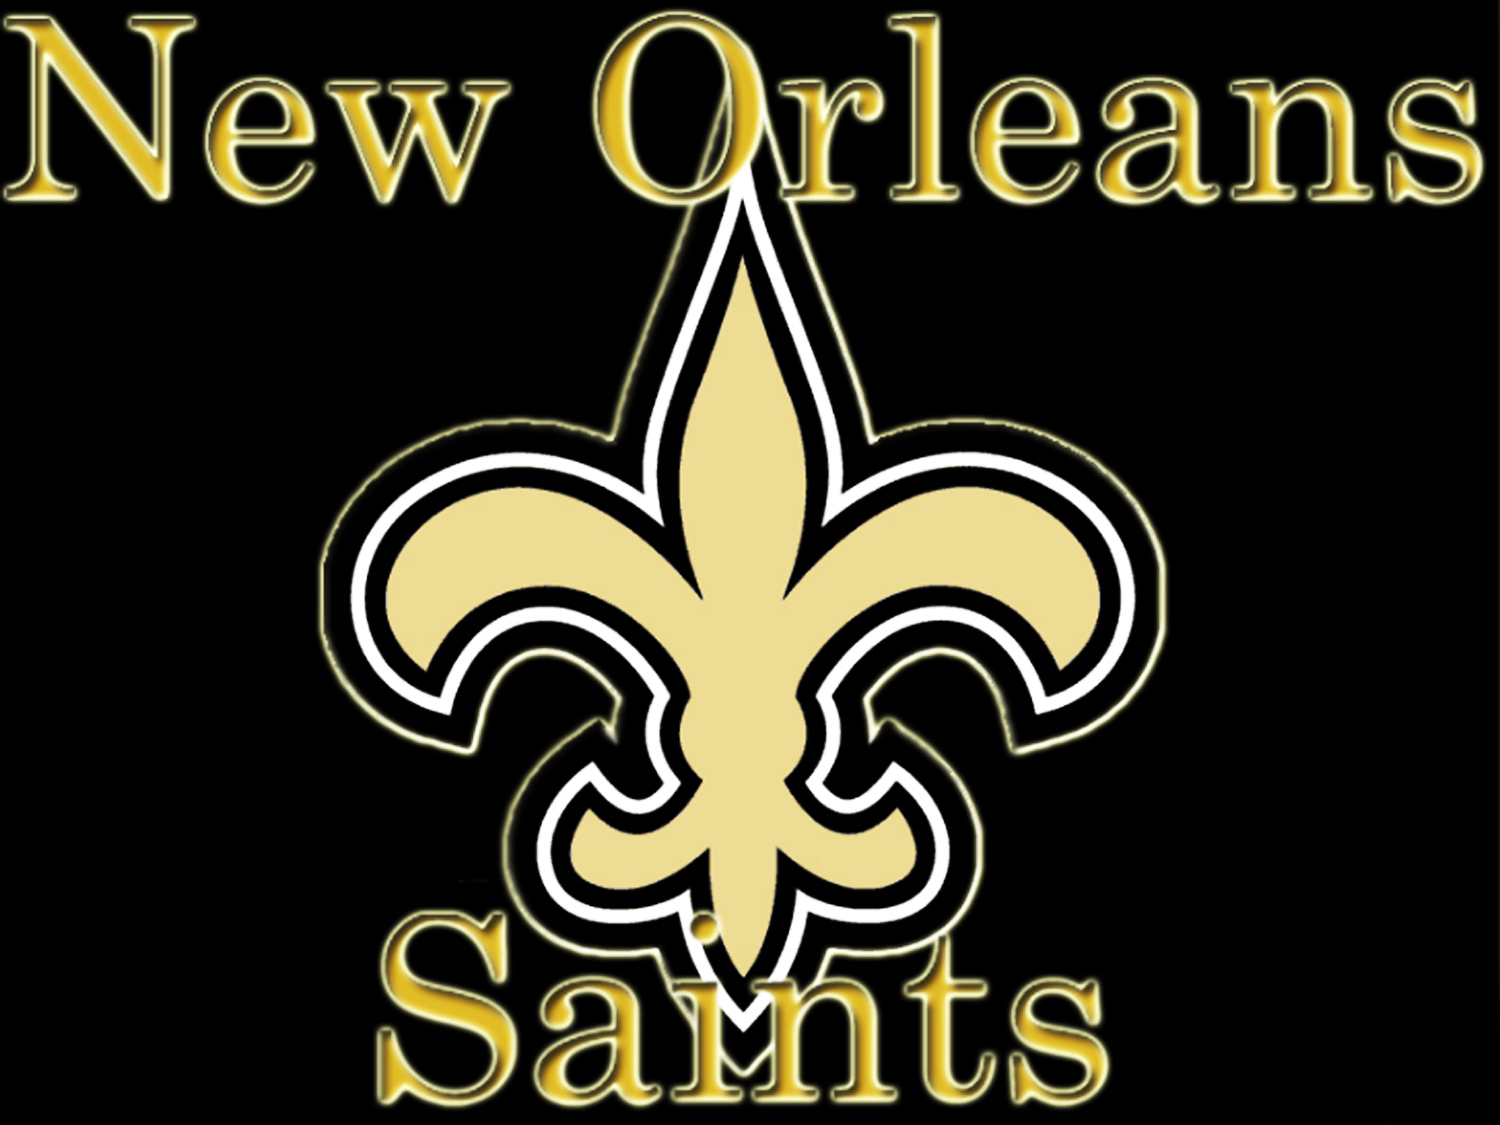 Lp Hot News If The Saints Want To Upset The Vikings They